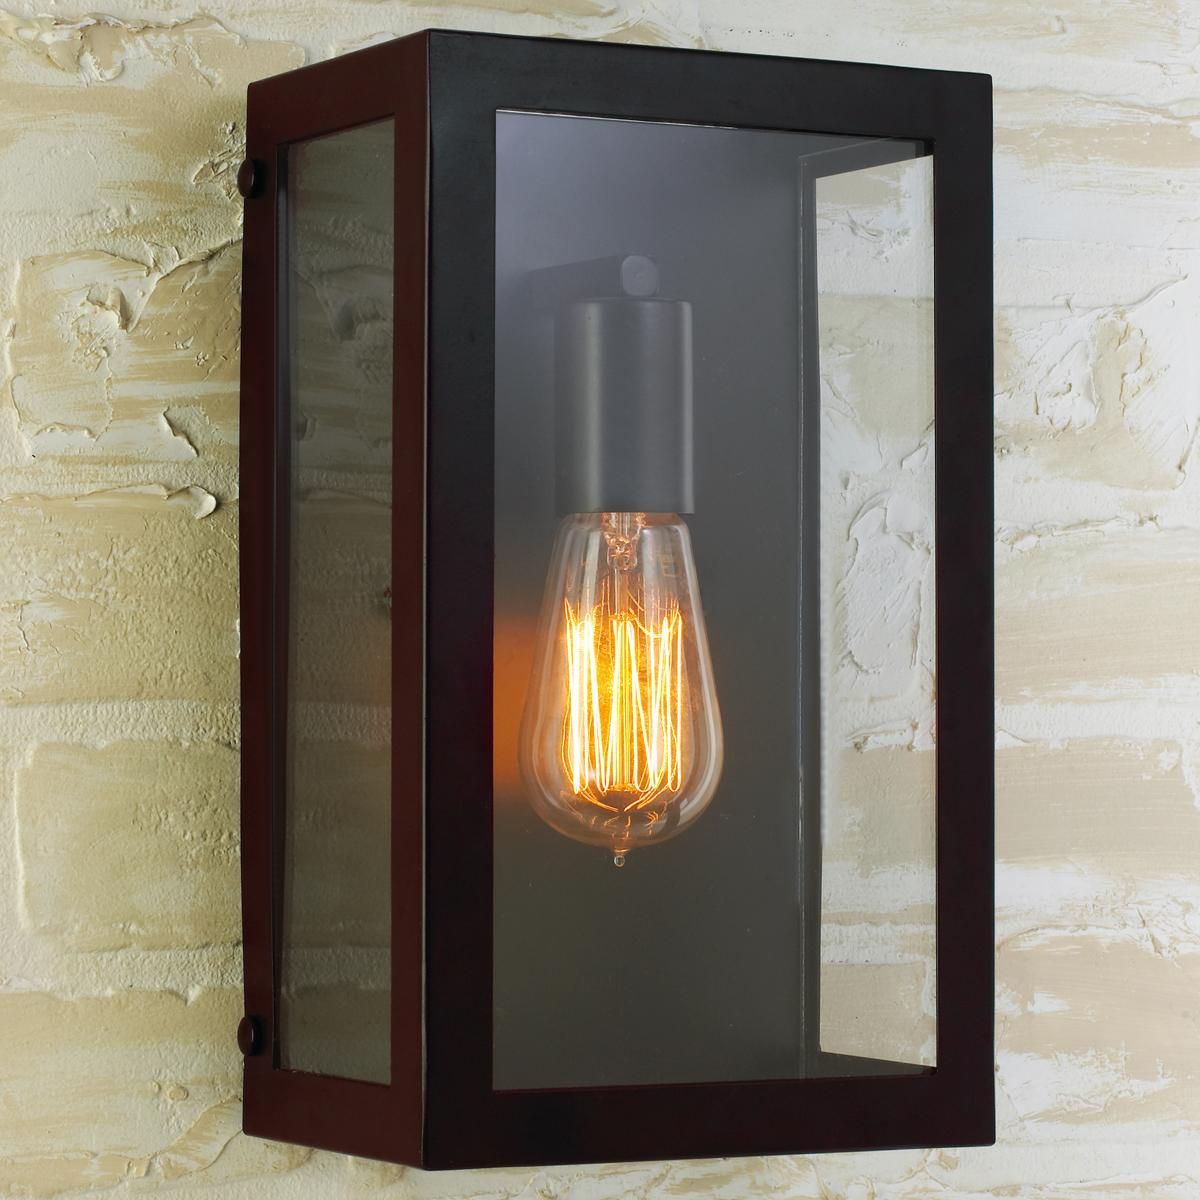 Modern Industrial Wall Sconce Exterior Light Fixtures